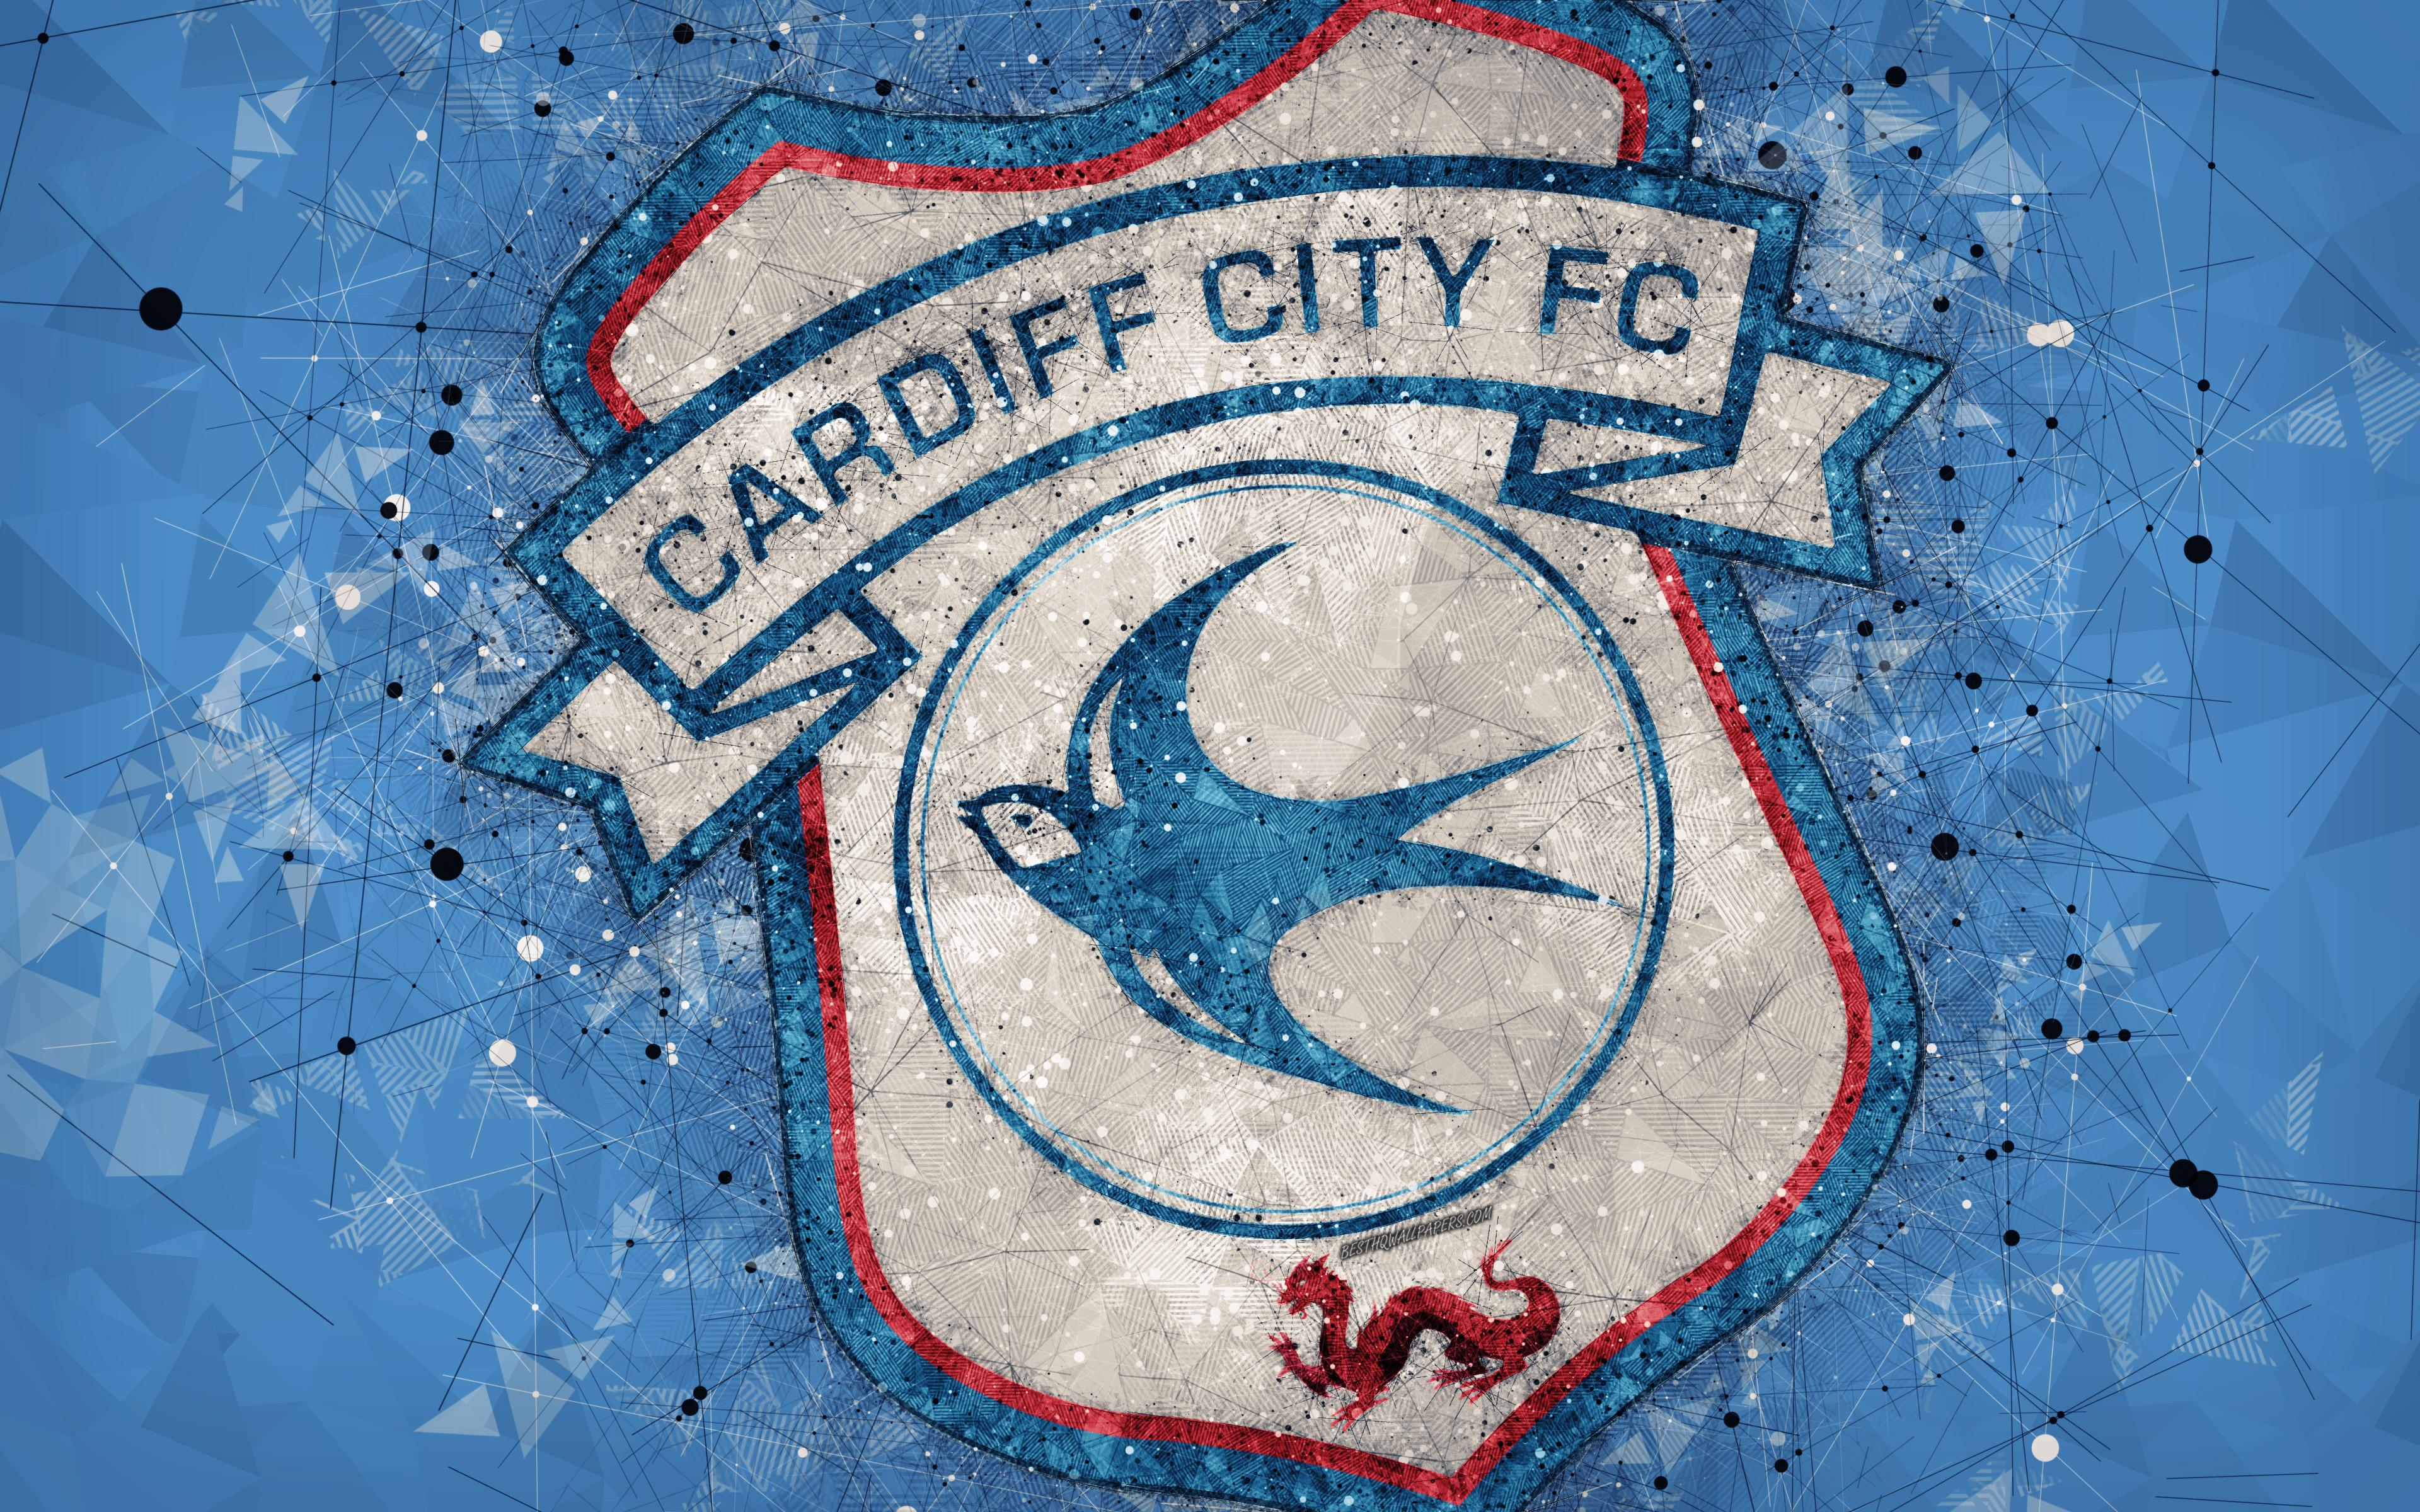 Download wallpapers Cardiff City FC, 4k, geometric art, logo, blue ...